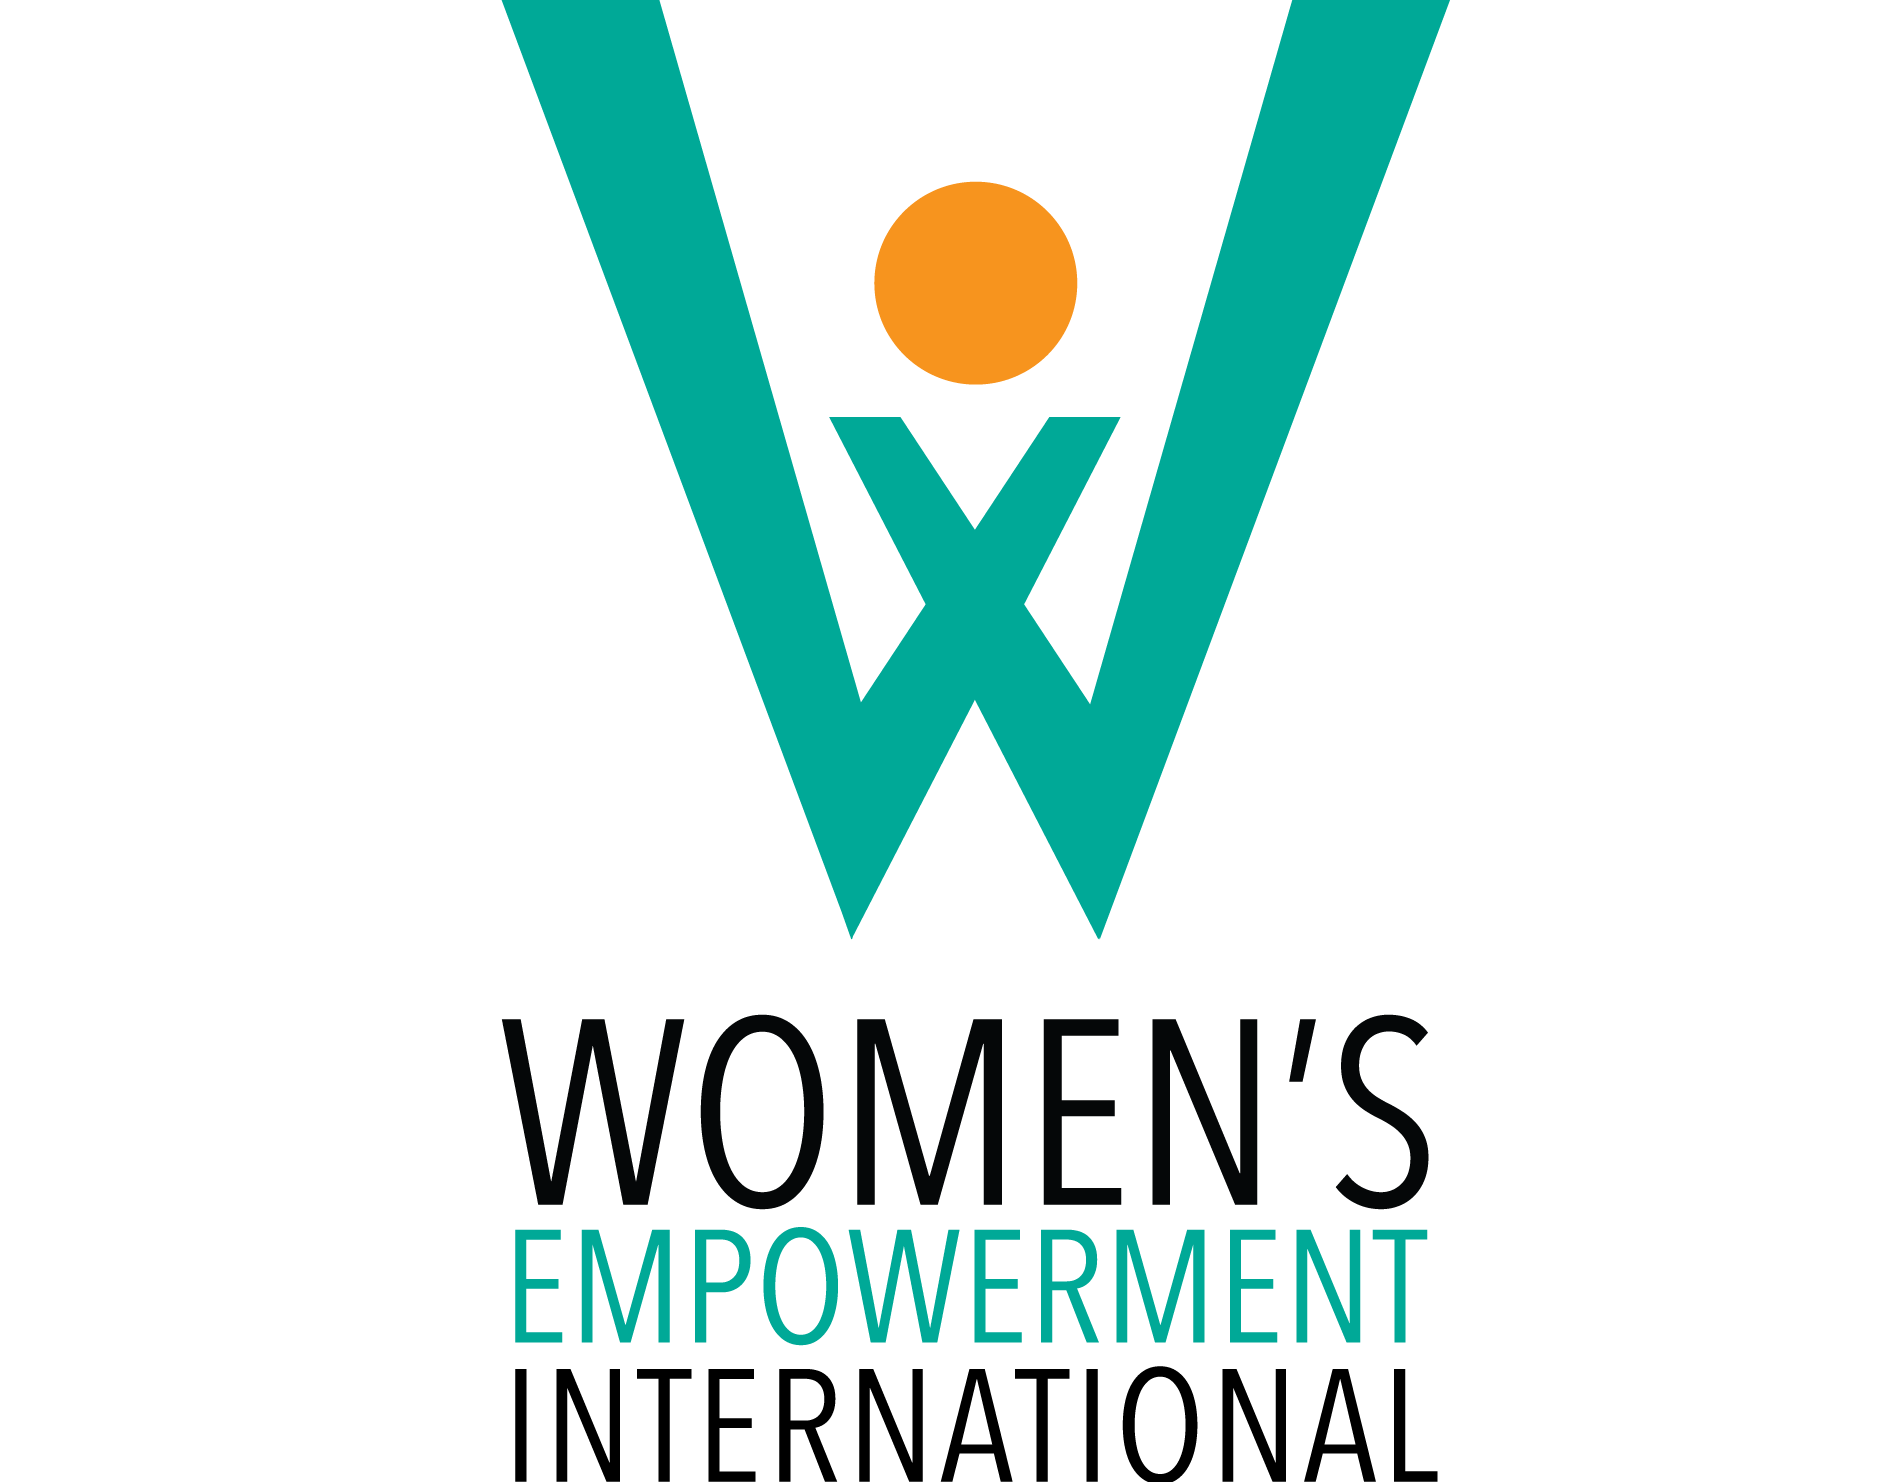 Women's Empowerment International